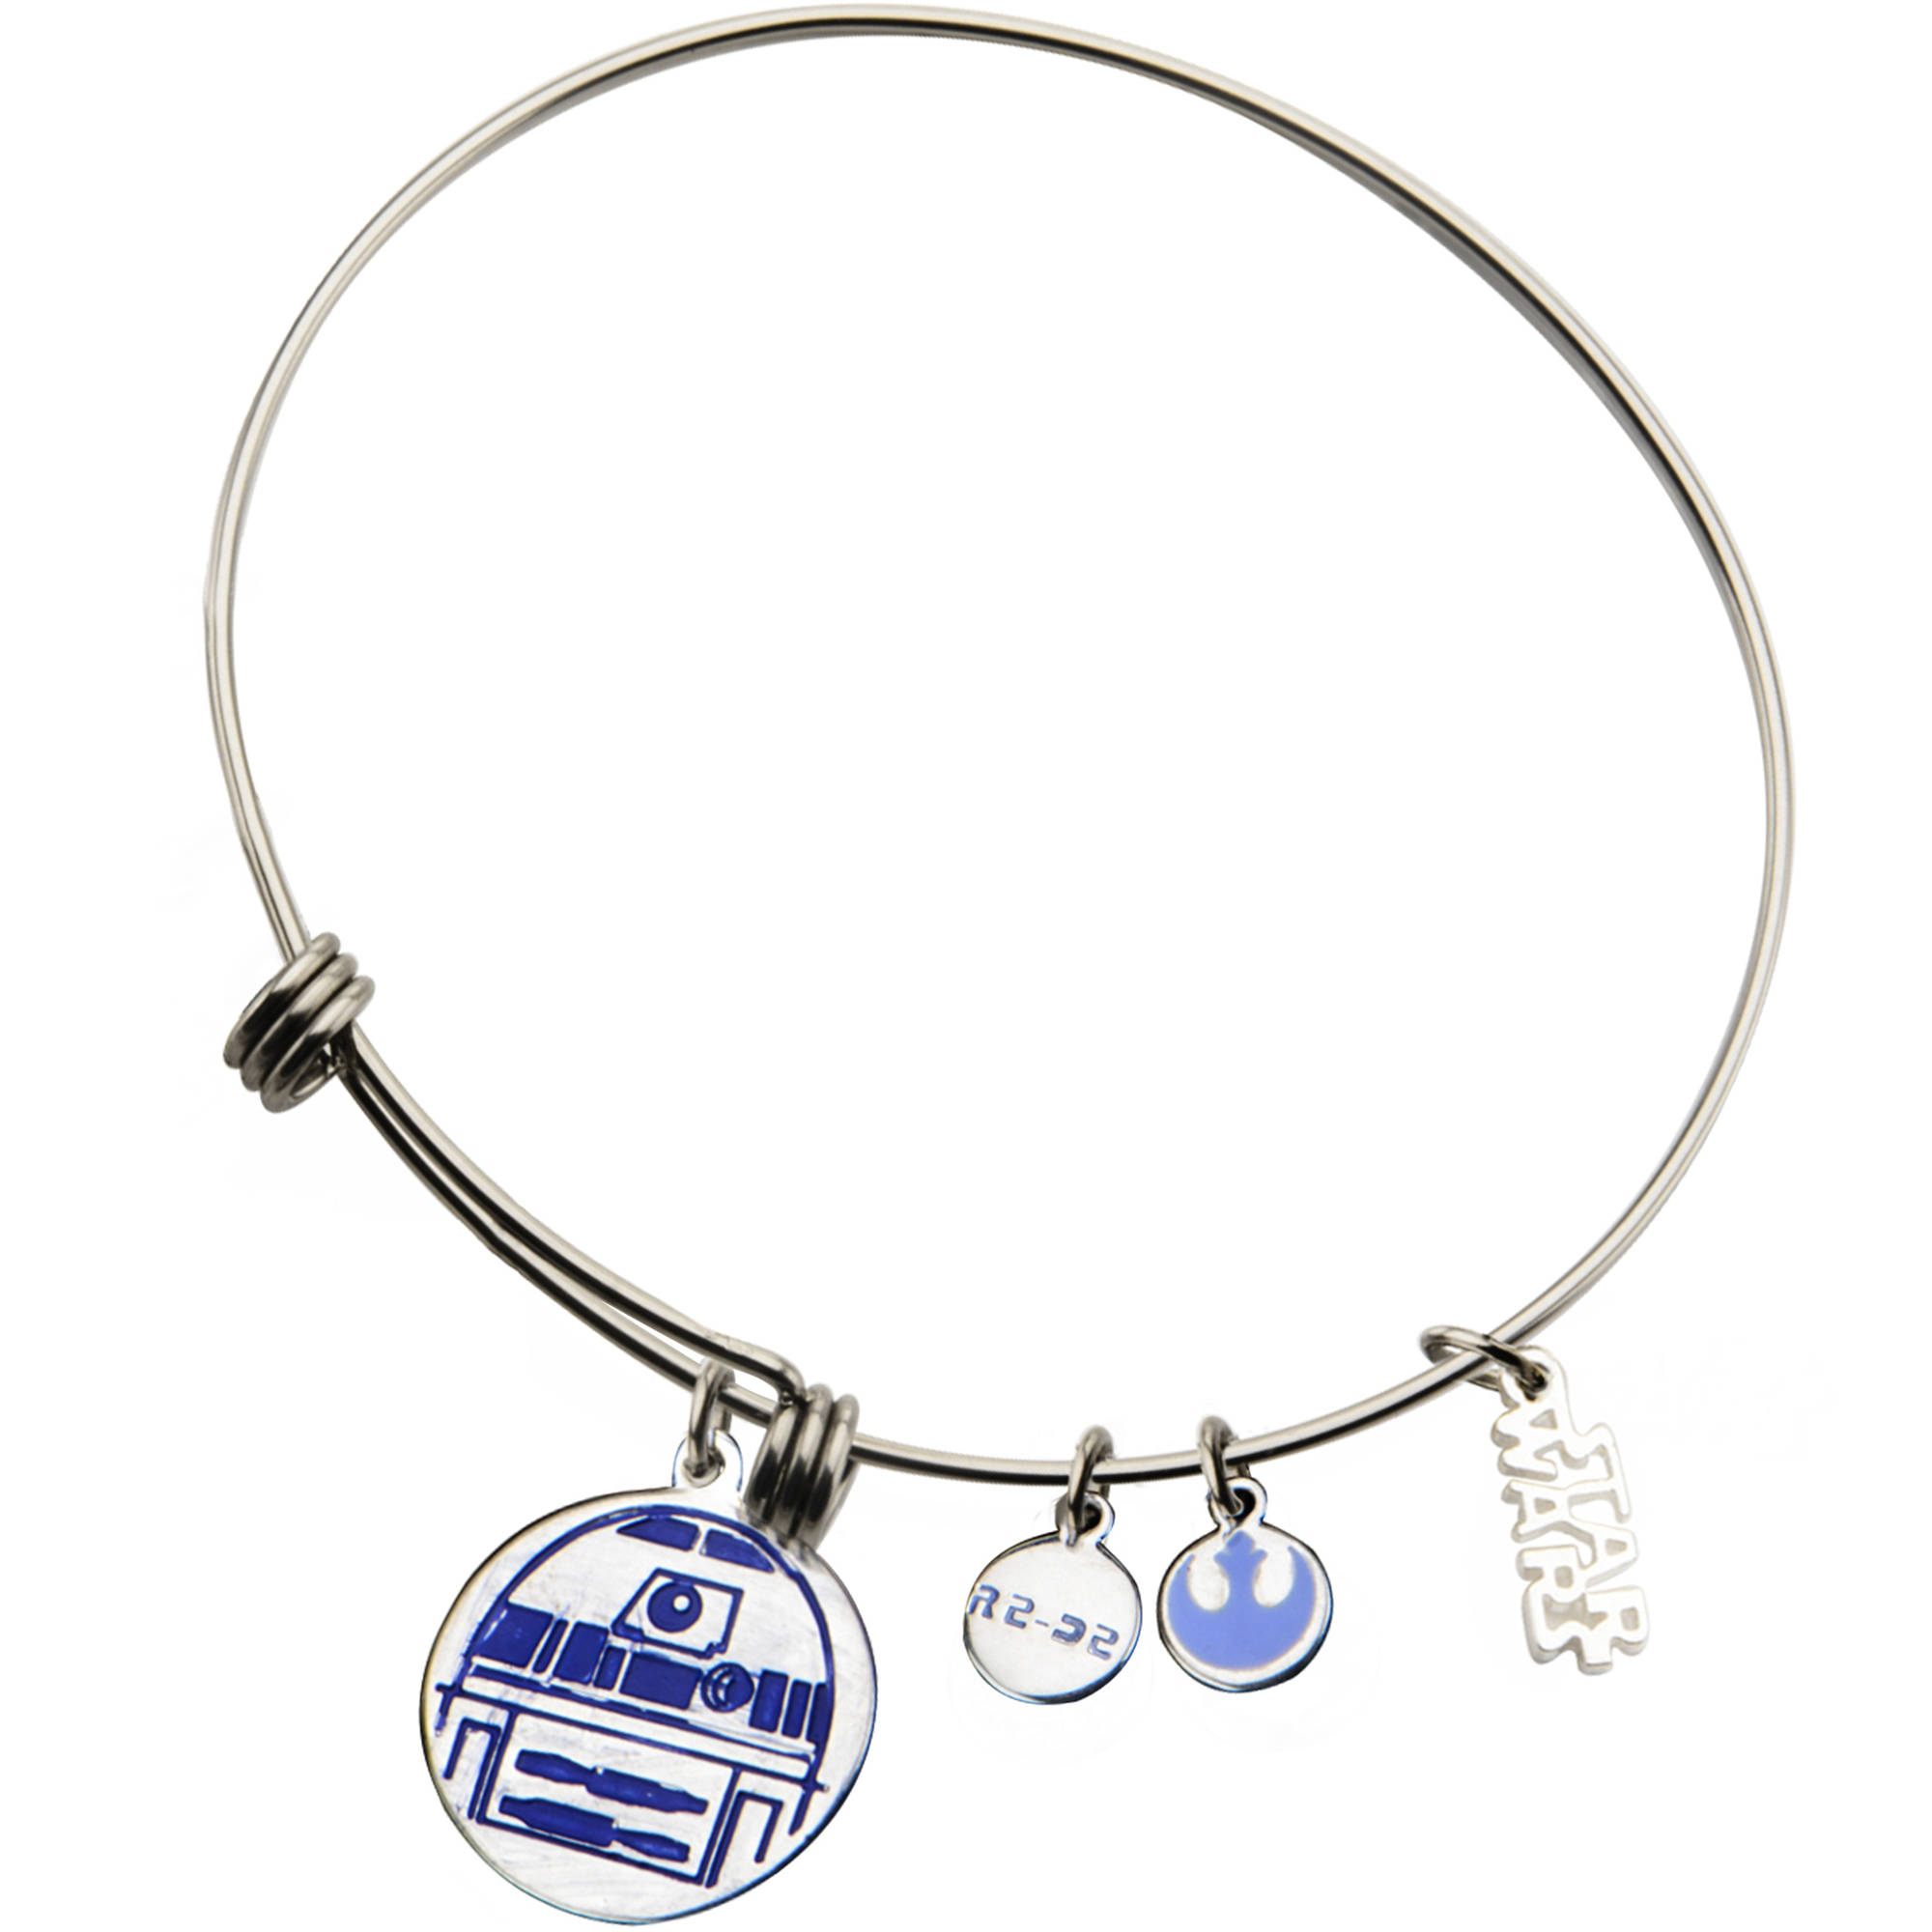 Disney Star Wars Women's Stainless Steel R2-D2 Blue Enamel-Filled Charm Bangle Bracelet, 7.5""